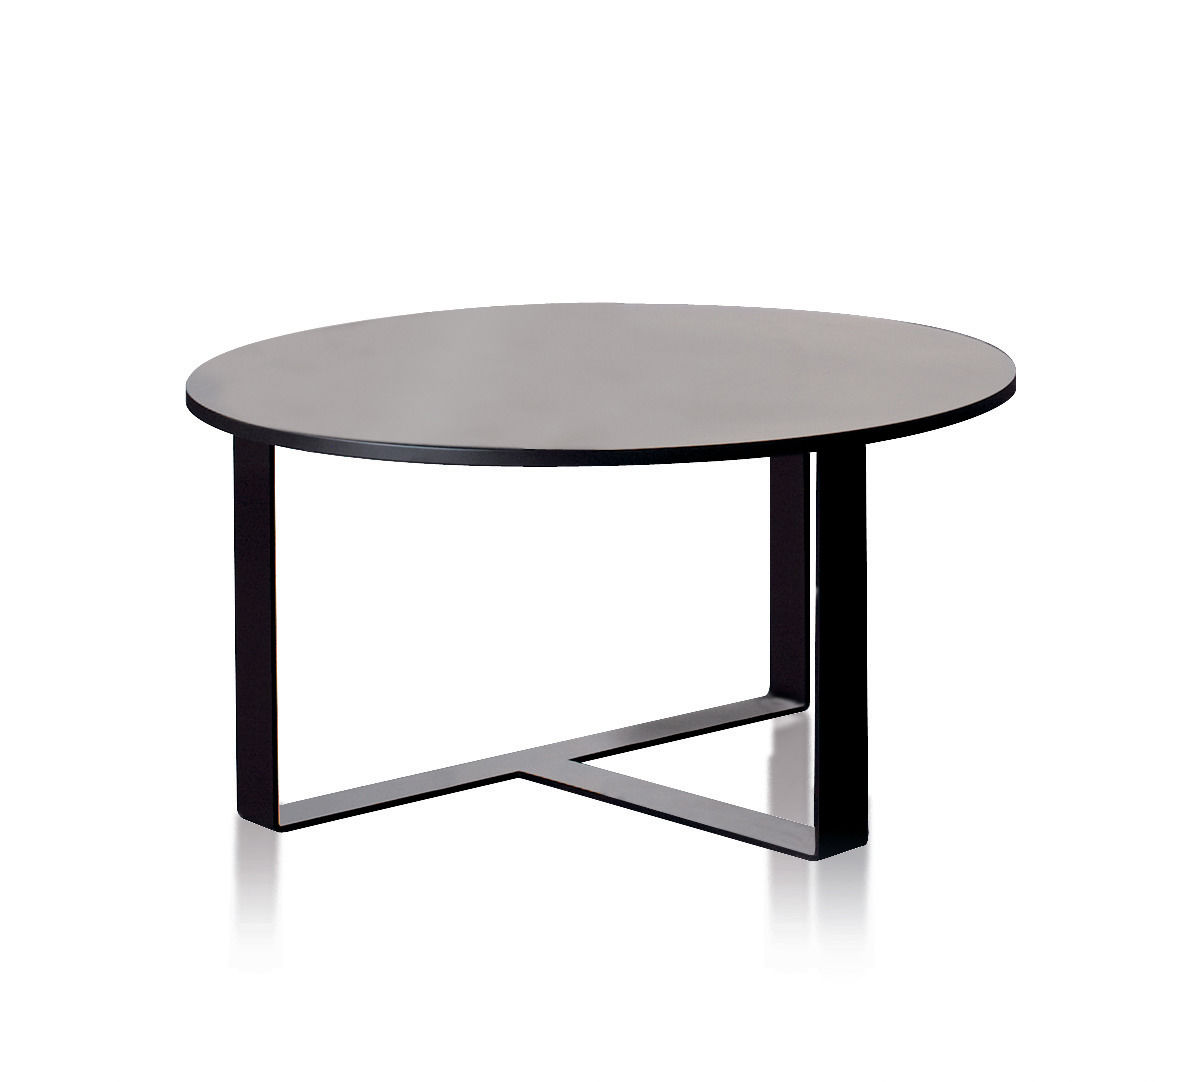 argo table stylecraft coffee table side table. Black Bedroom Furniture Sets. Home Design Ideas